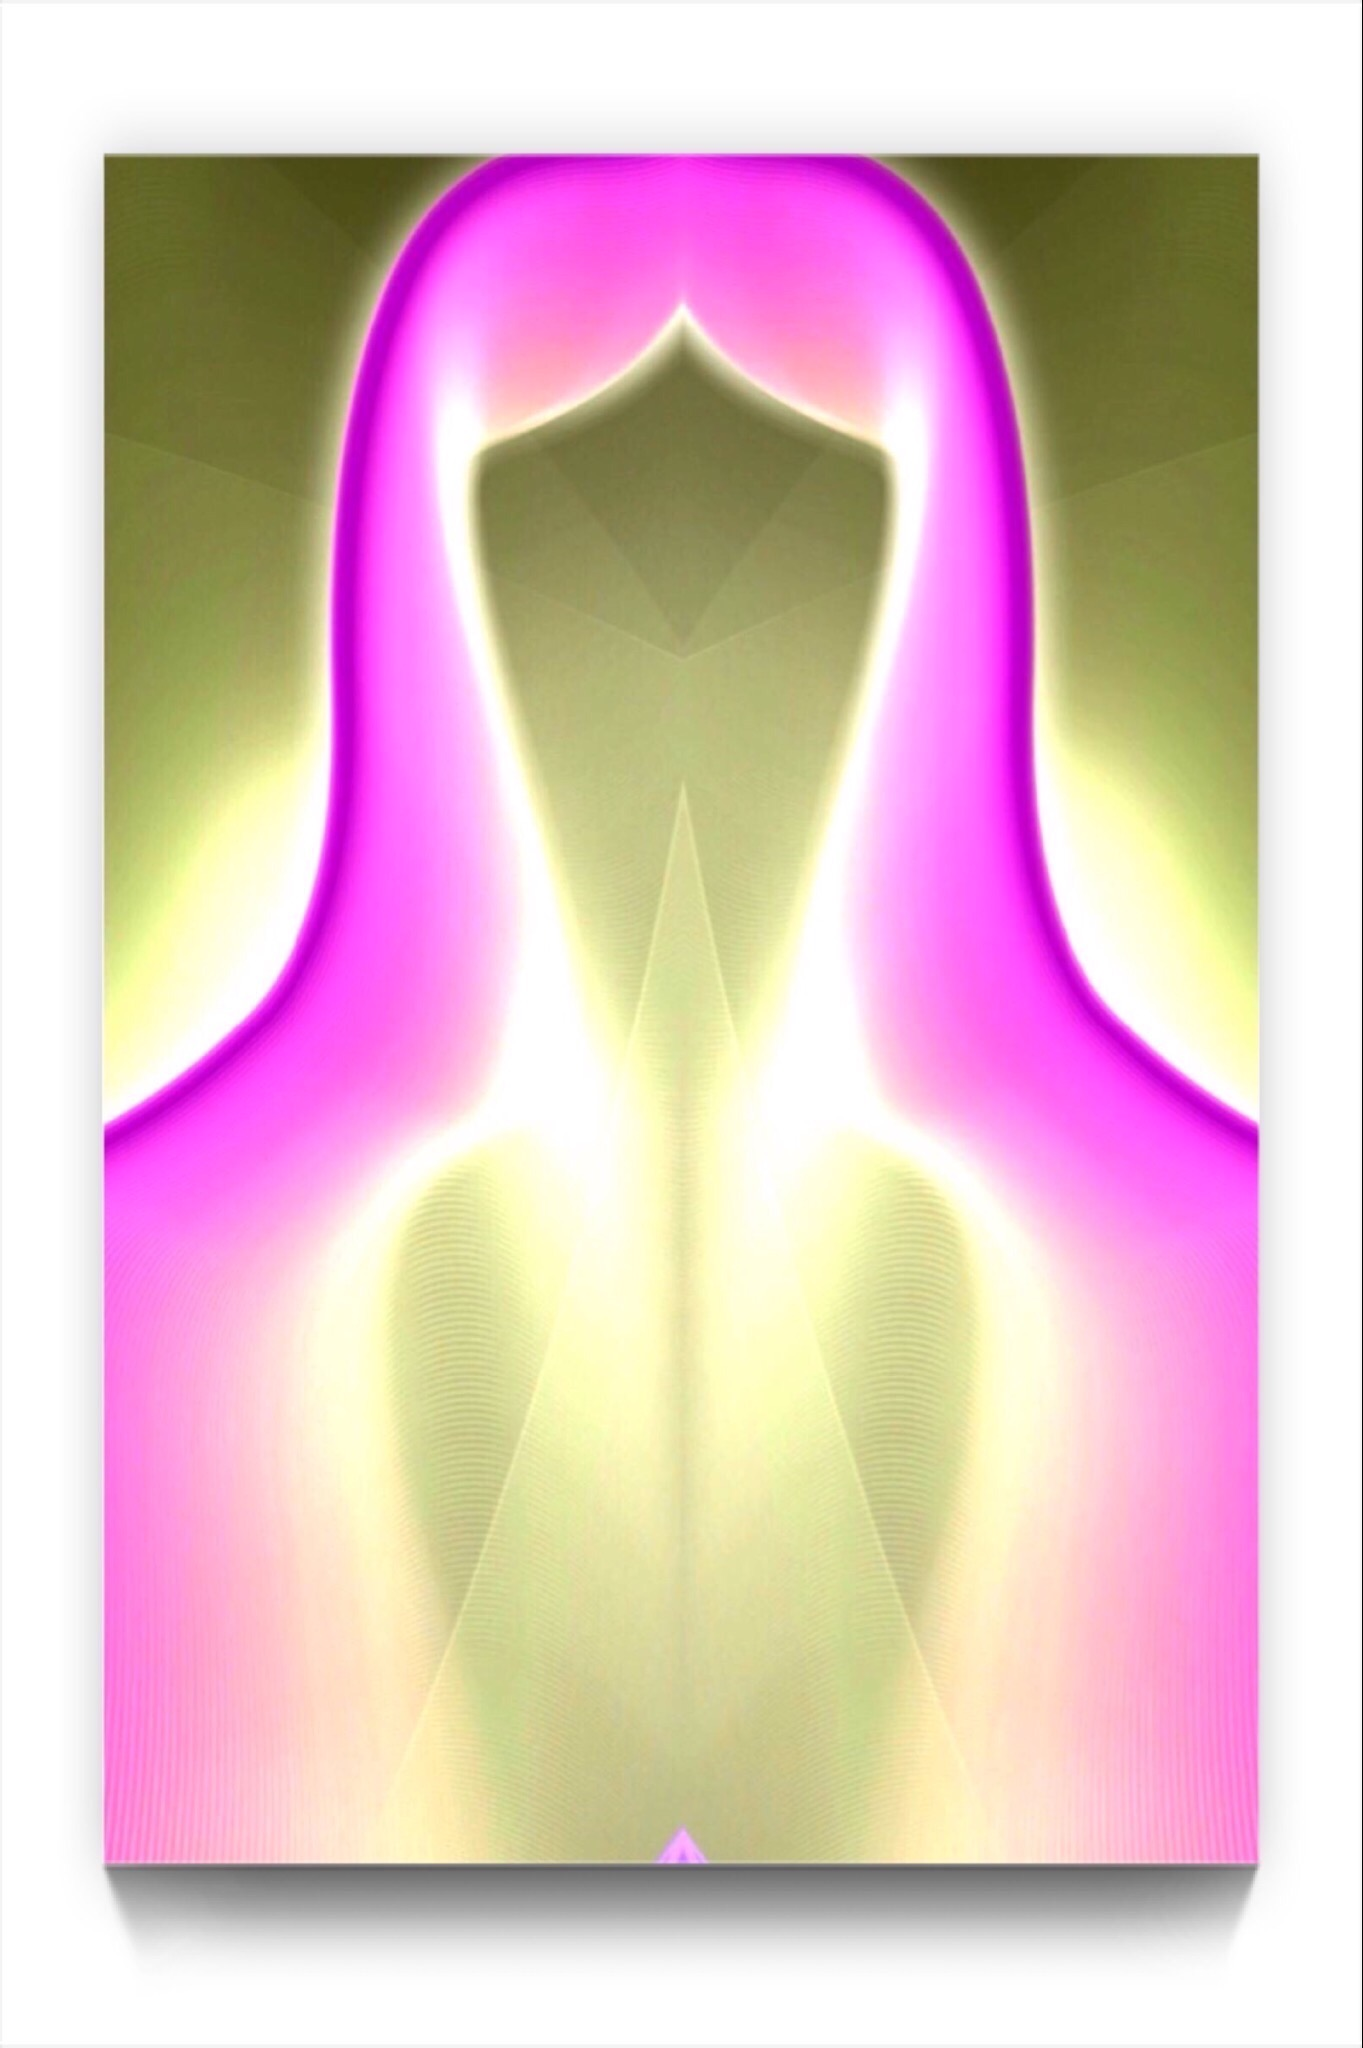 a sacred feminine by newmedia iphone Artist Mark Sedgwick